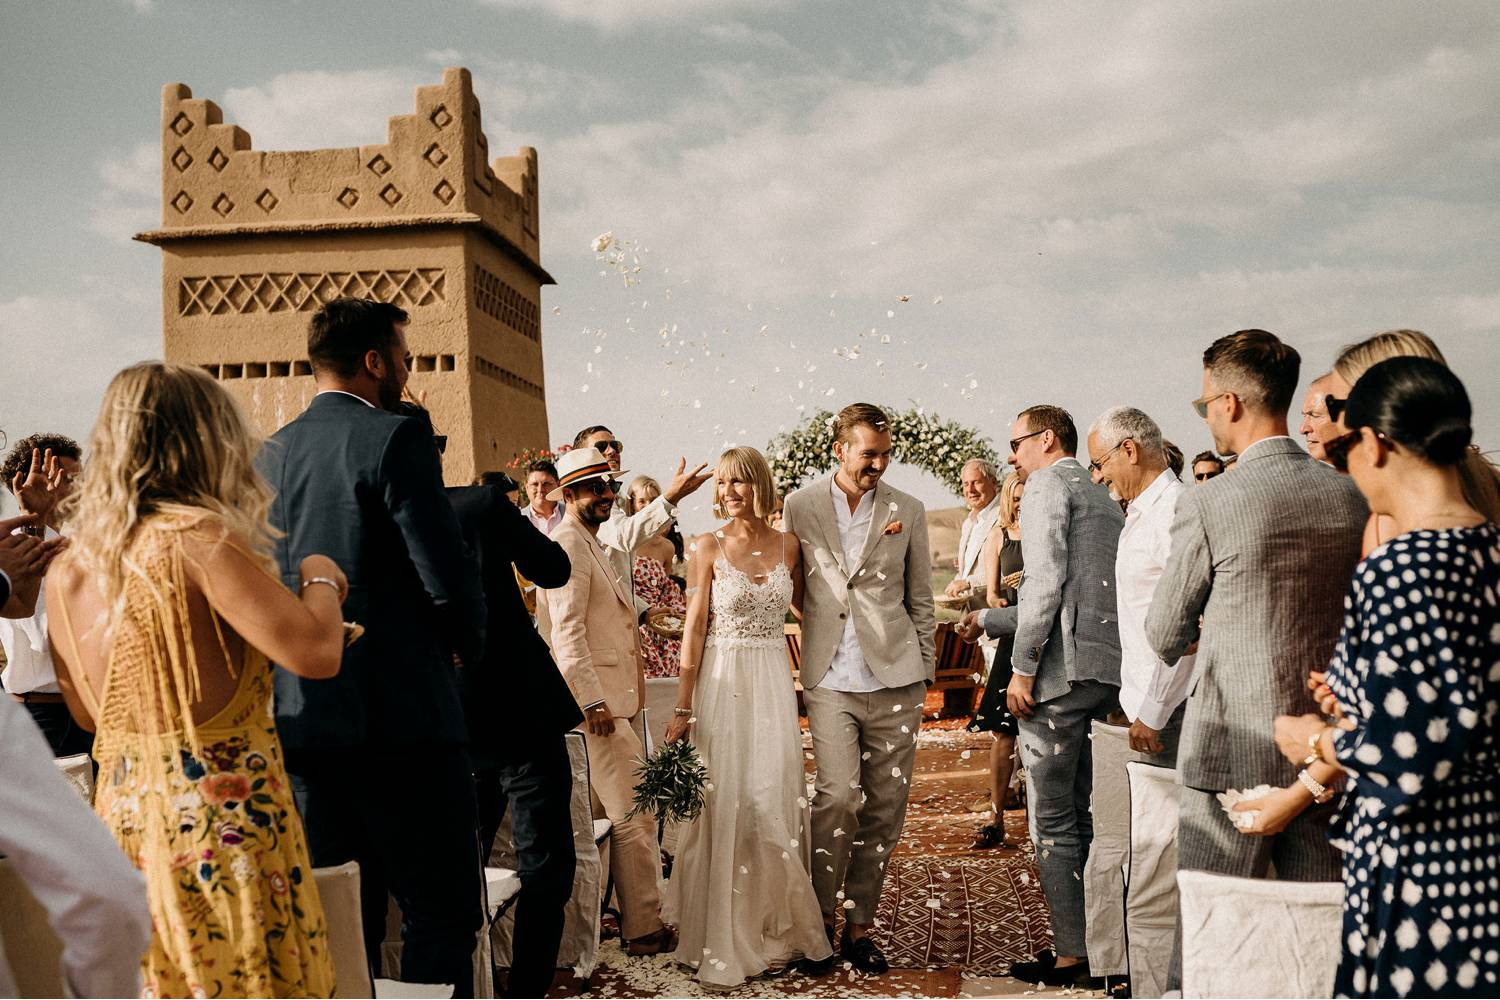 Aneta Lehotska's wedding photo depicts two newlyweds processing up the aisle as their guests shower them with flower petals.